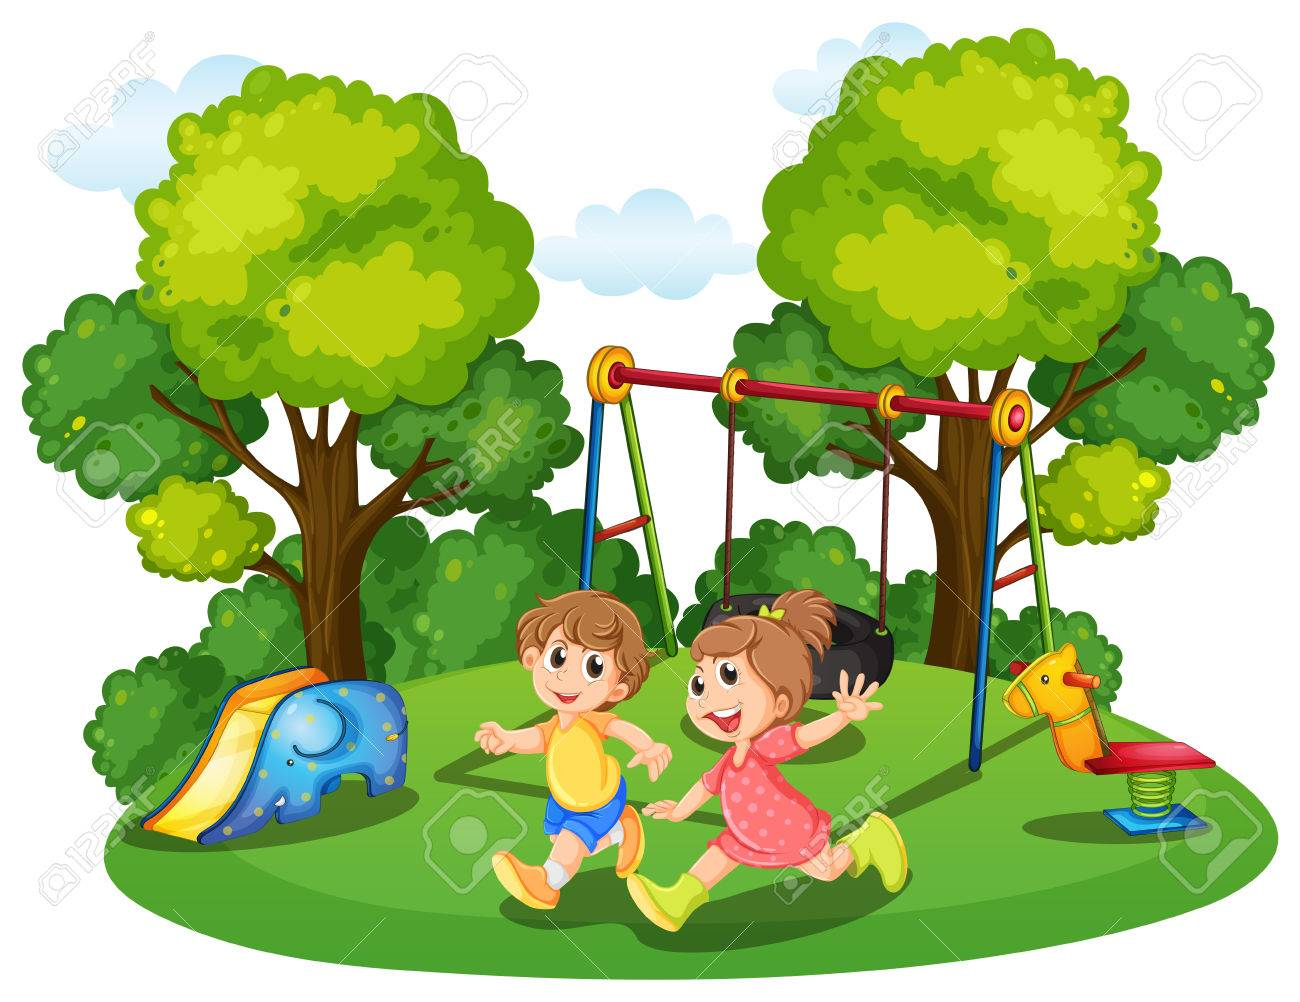 two kids running in the park illustration royalty free cliparts rh 123rf com park clipart png park clipart